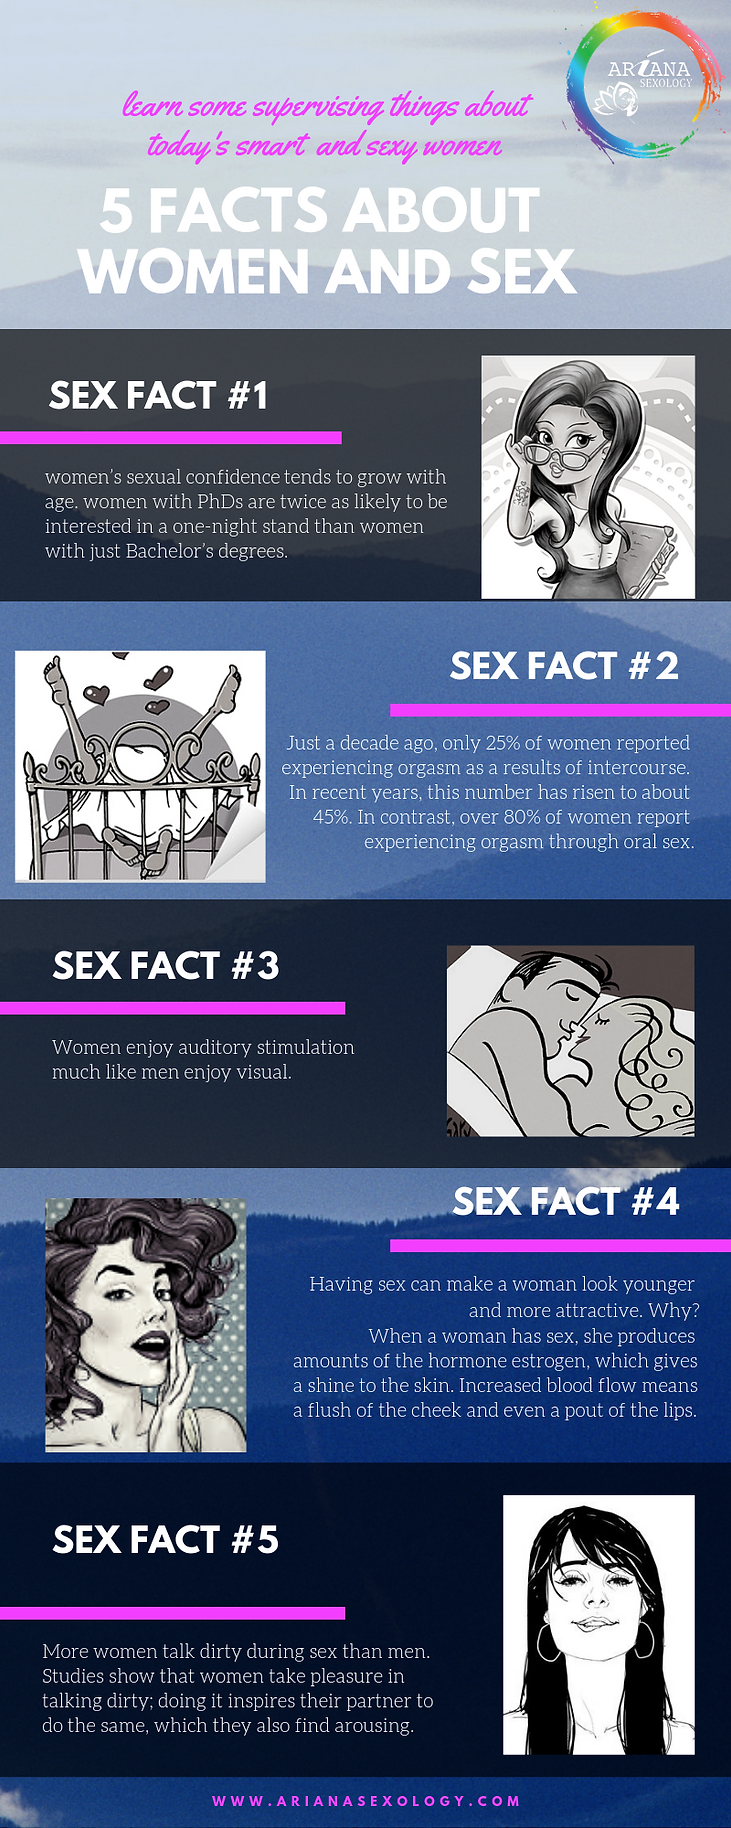 Women and Sex (Ariana Sexology).png